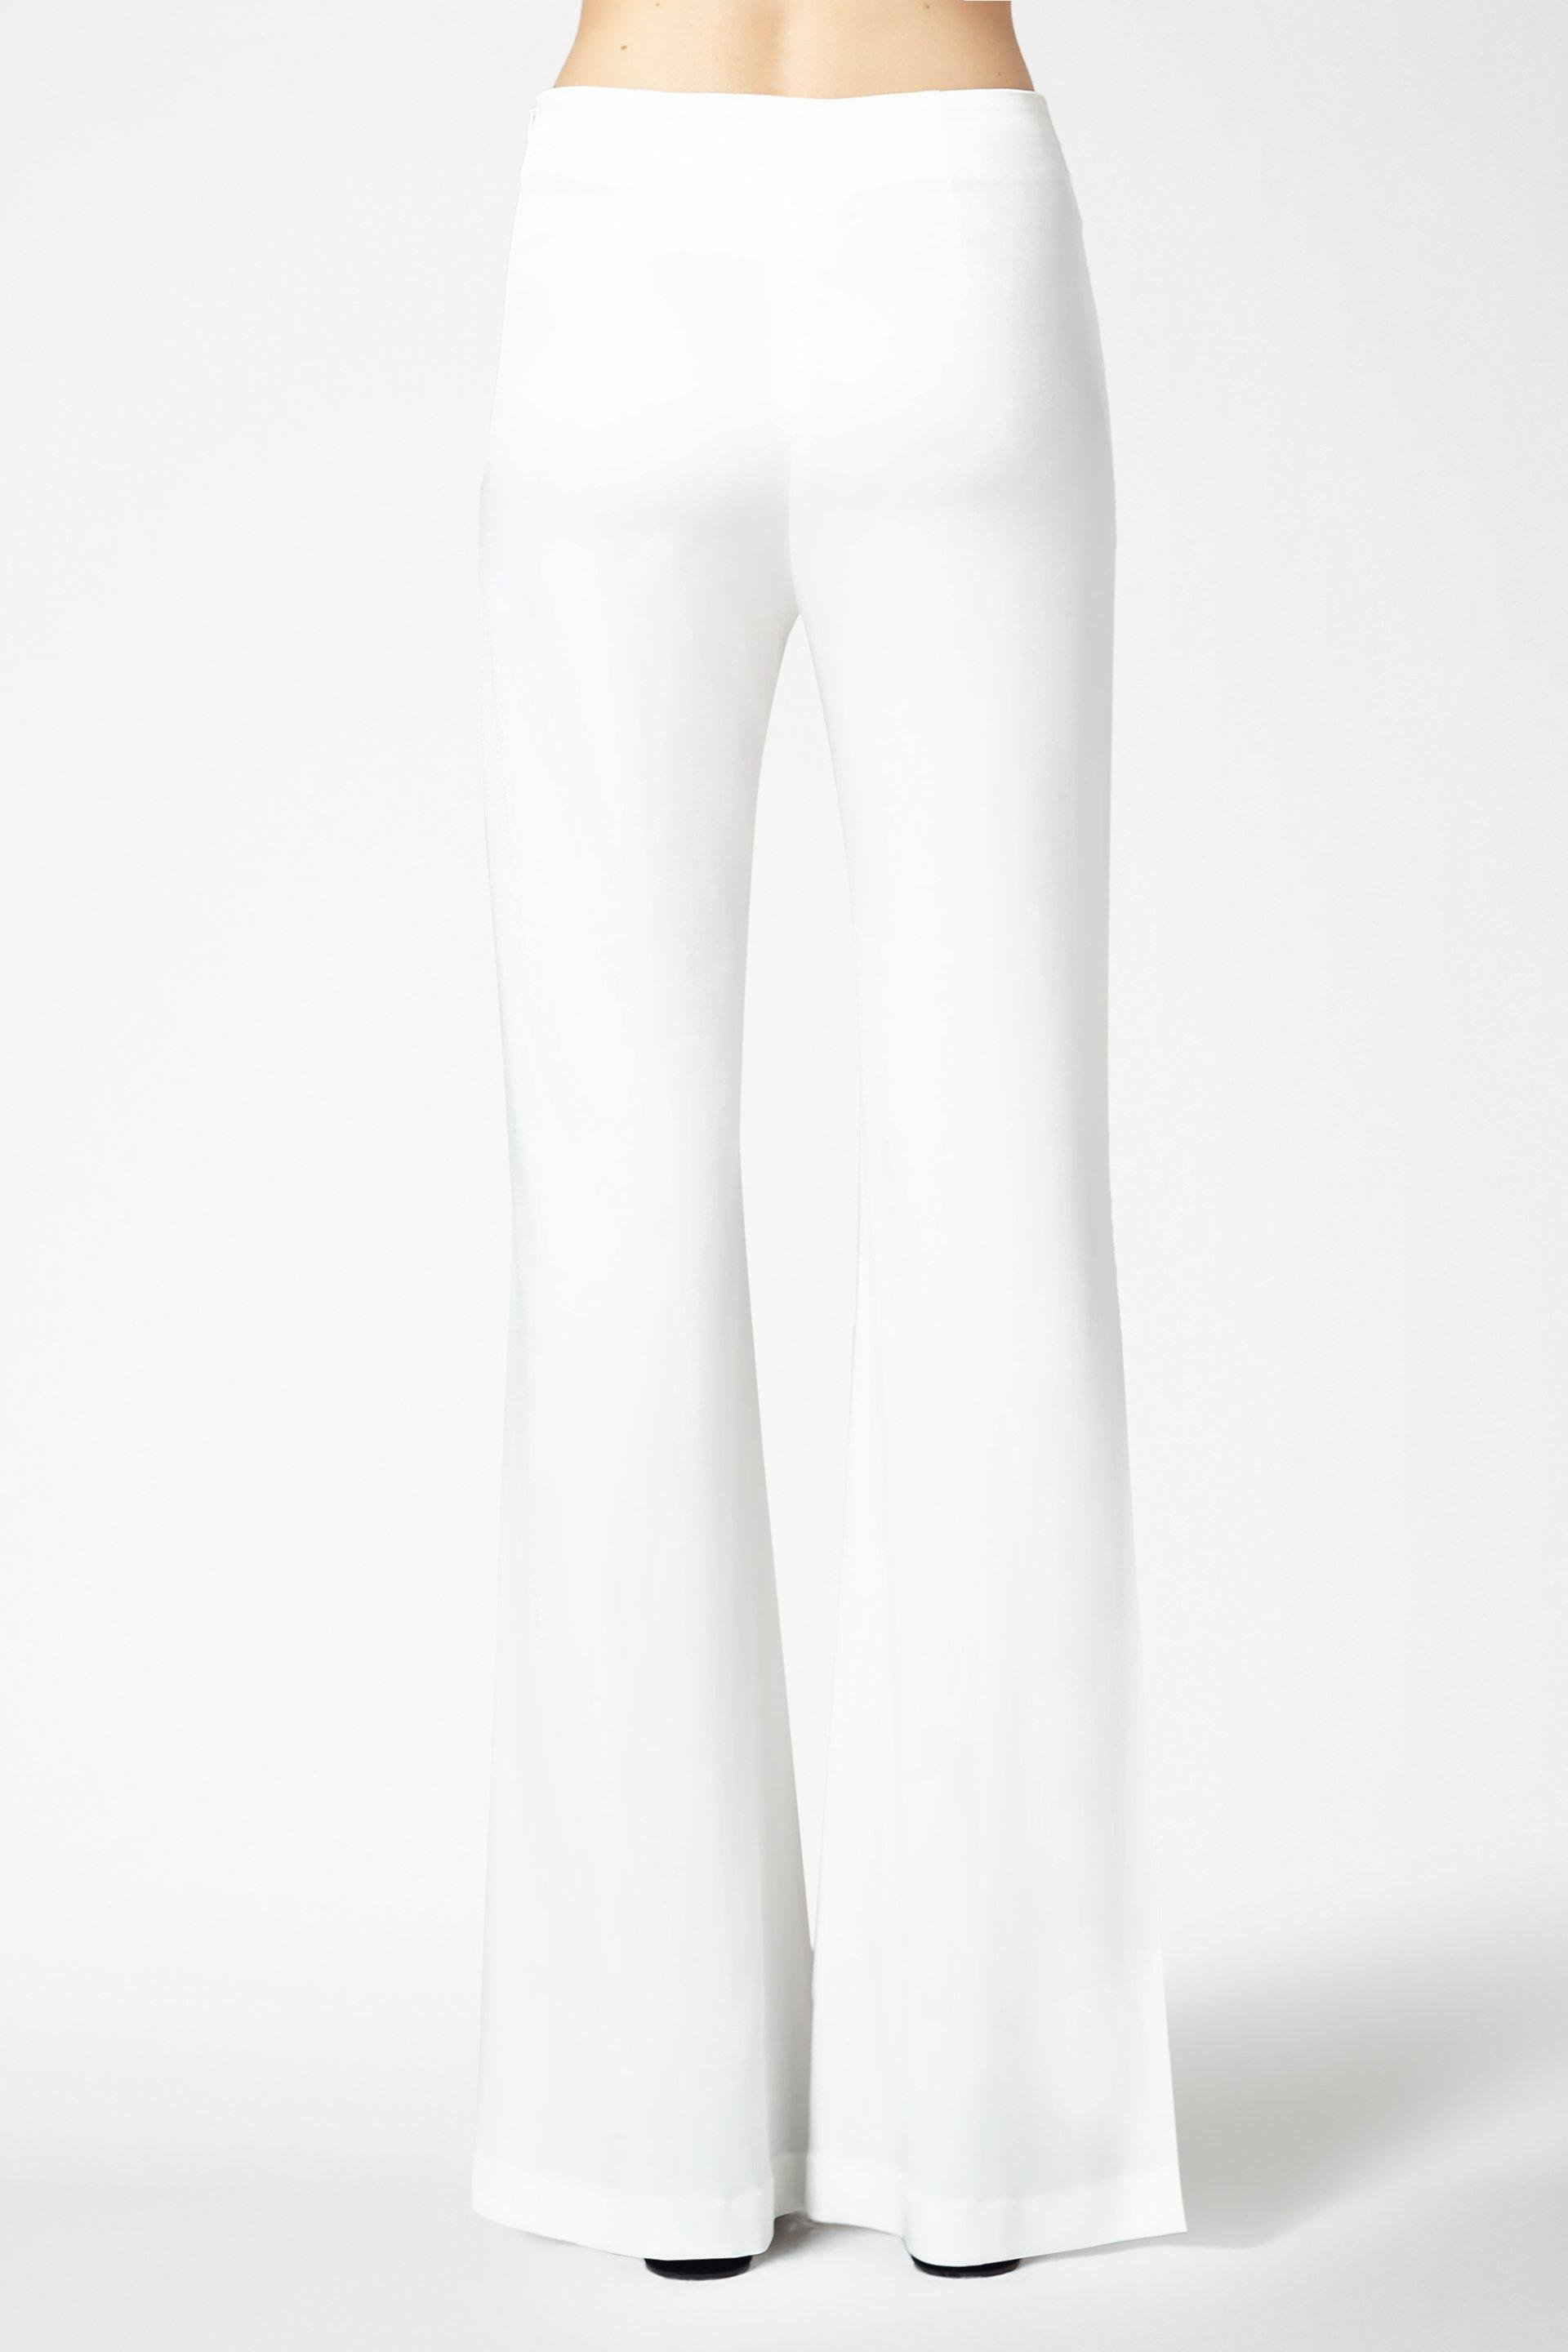 High Waisted Satin Trousers - White 3